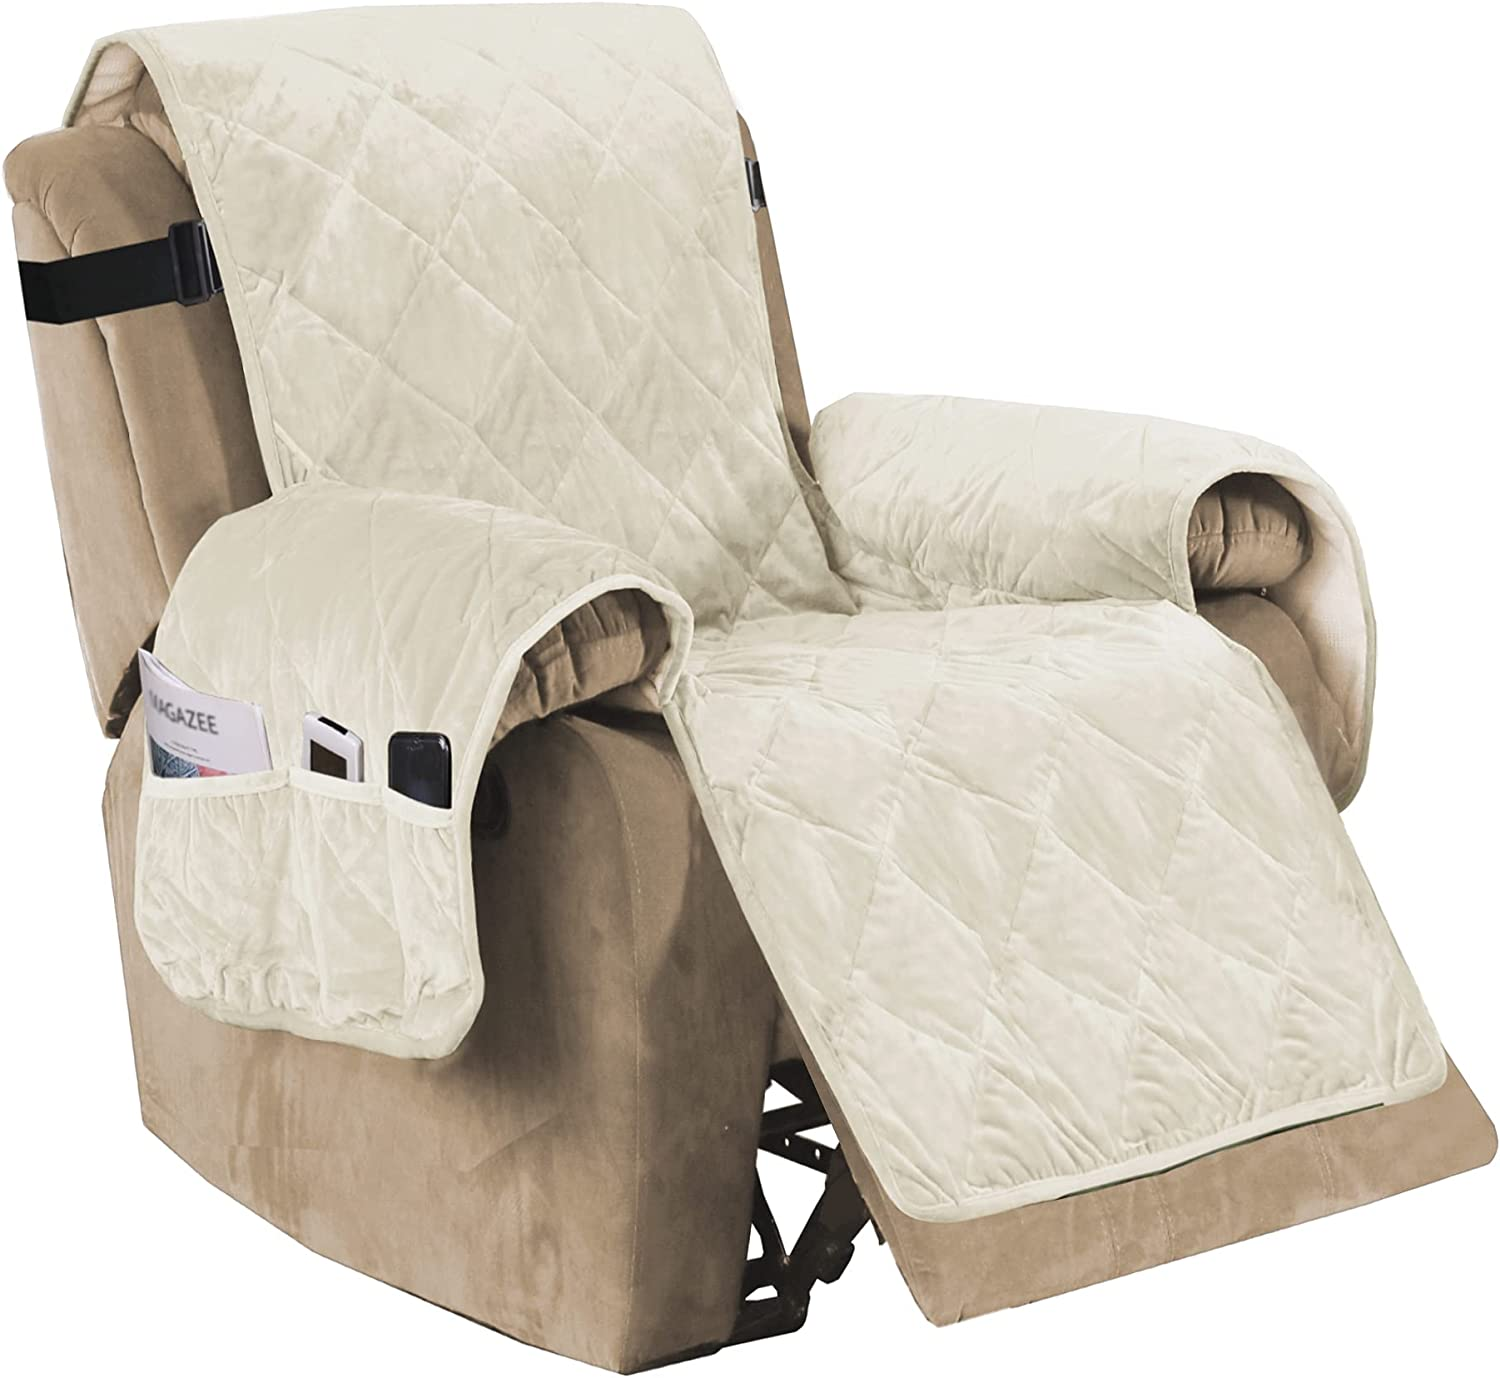 Recliner Sofa Slipcover Slip Resistant Quilted Velvet Plush Recliner Cover Furniture Protector Seat Width Up to 28